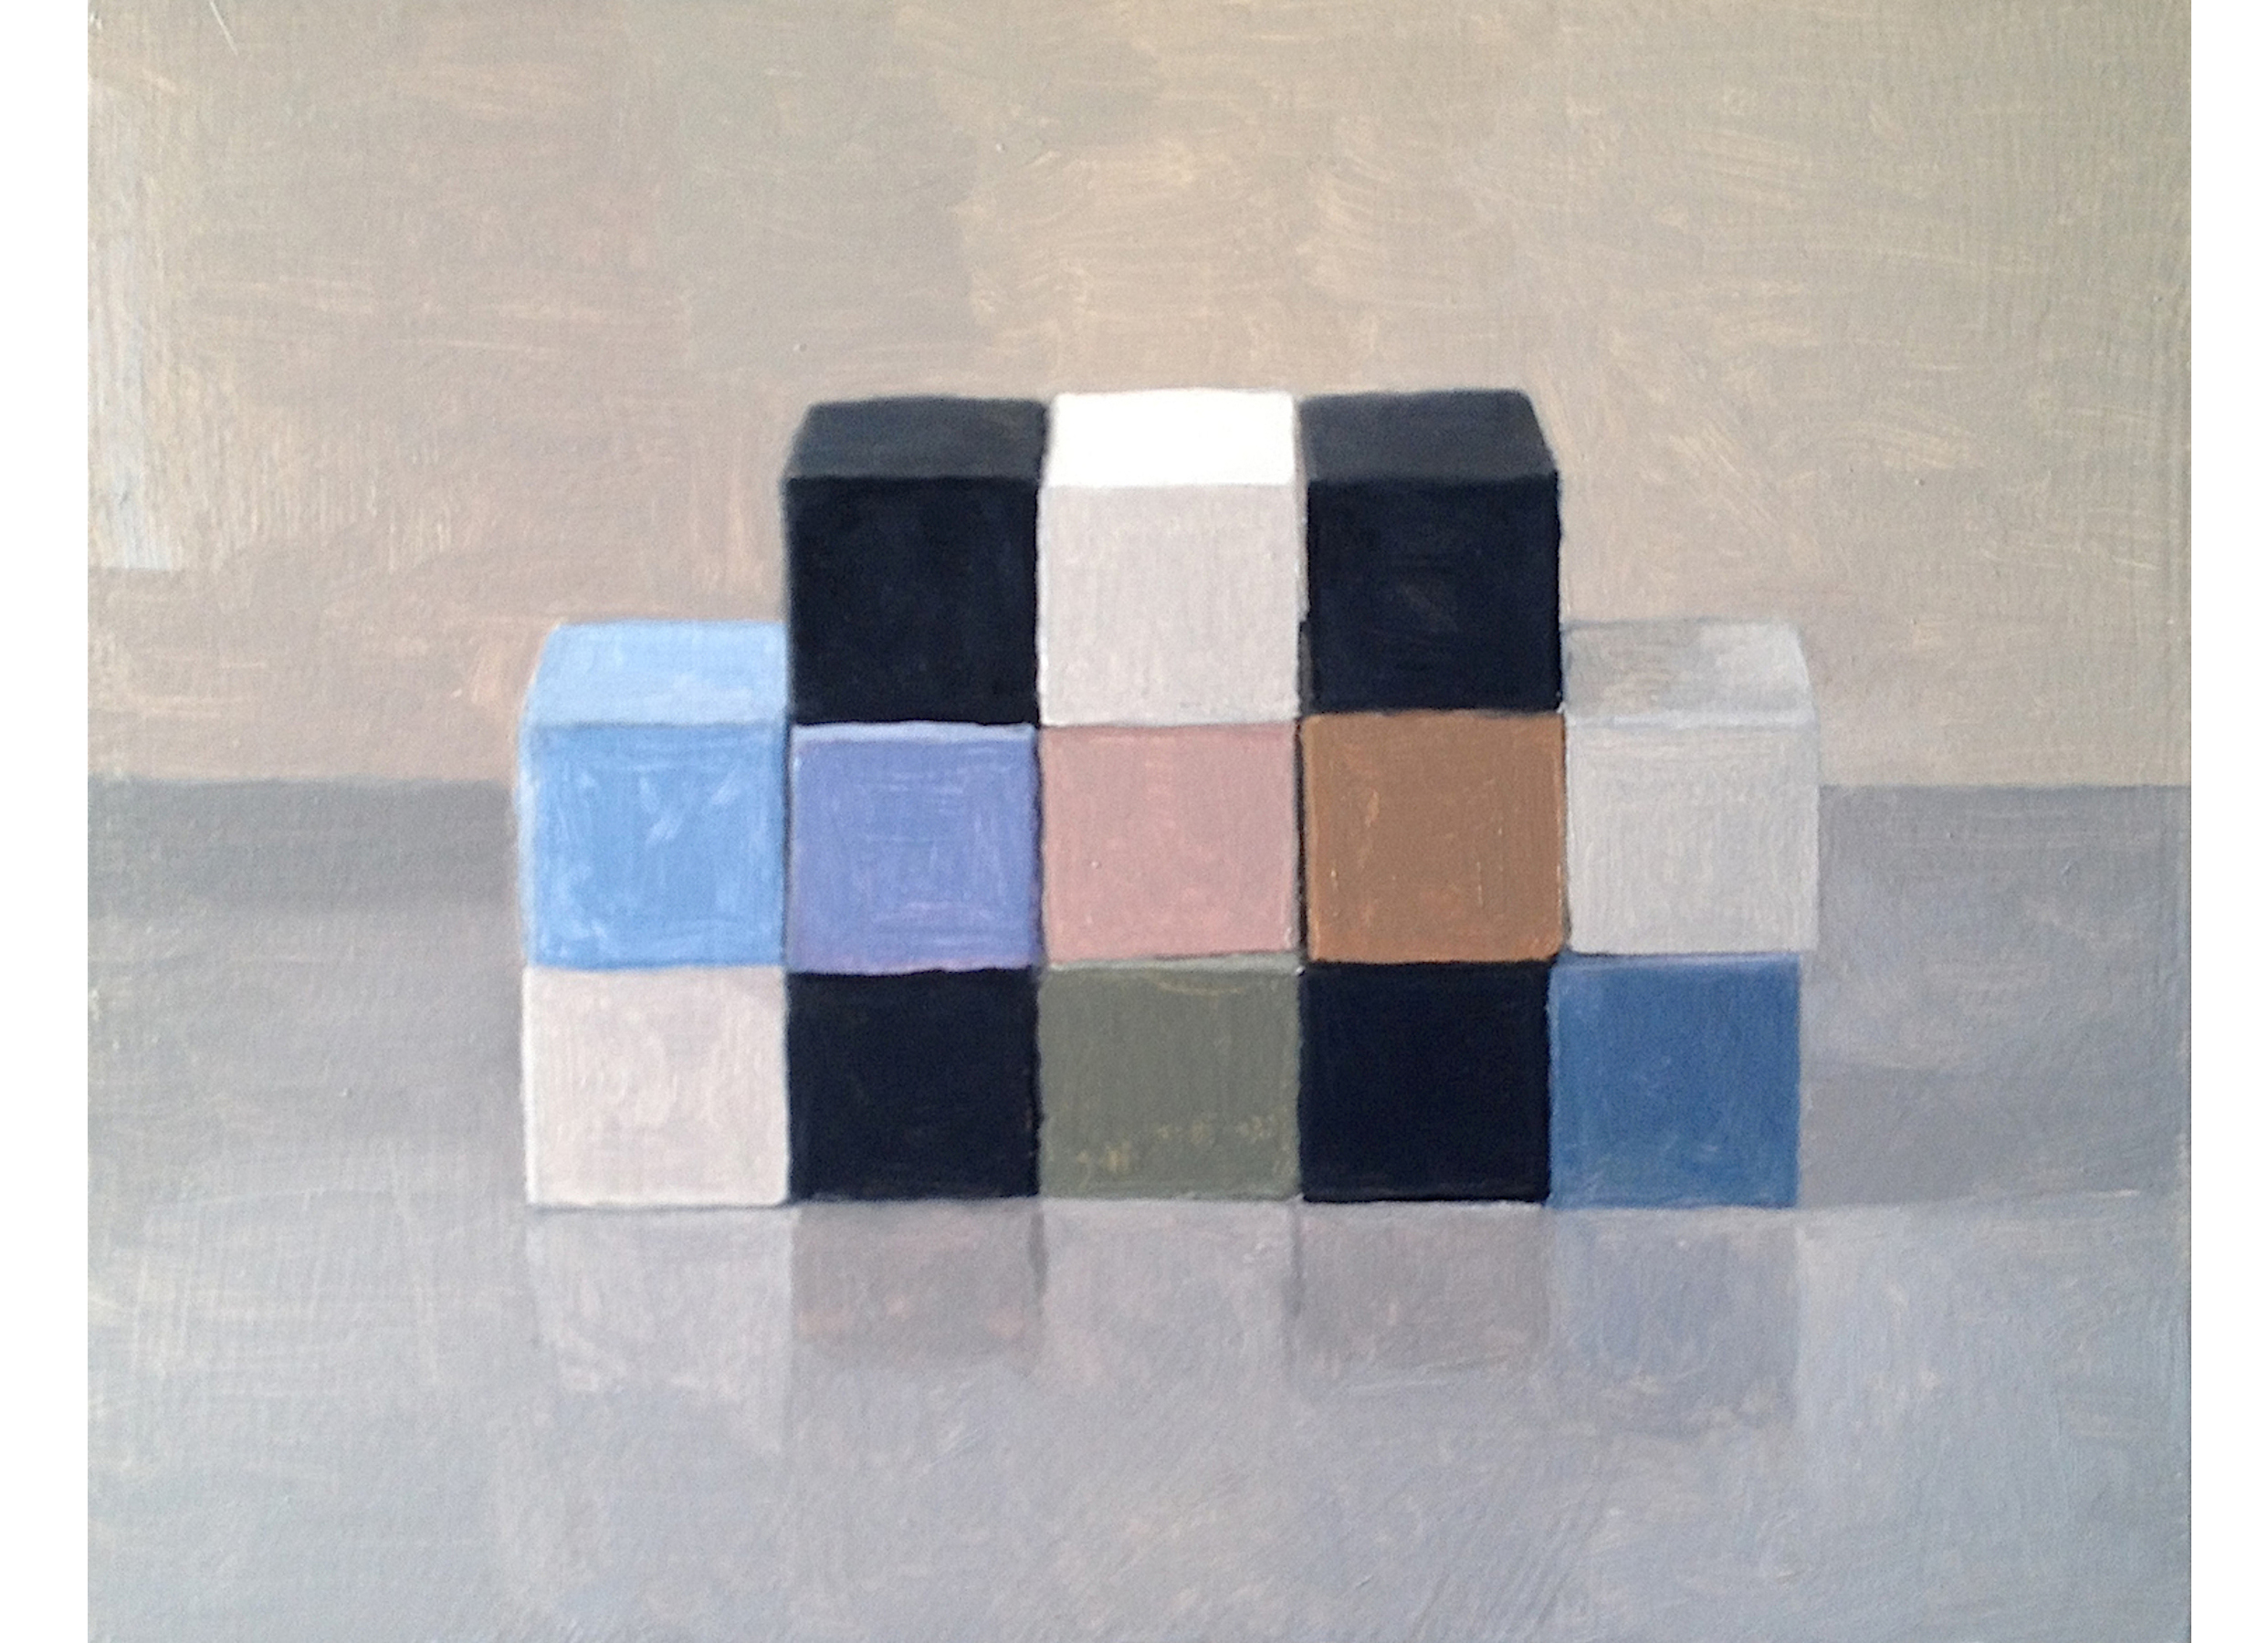 Study, Checkerboard VI,  2014 Oil on Wood 28 x 35 cm